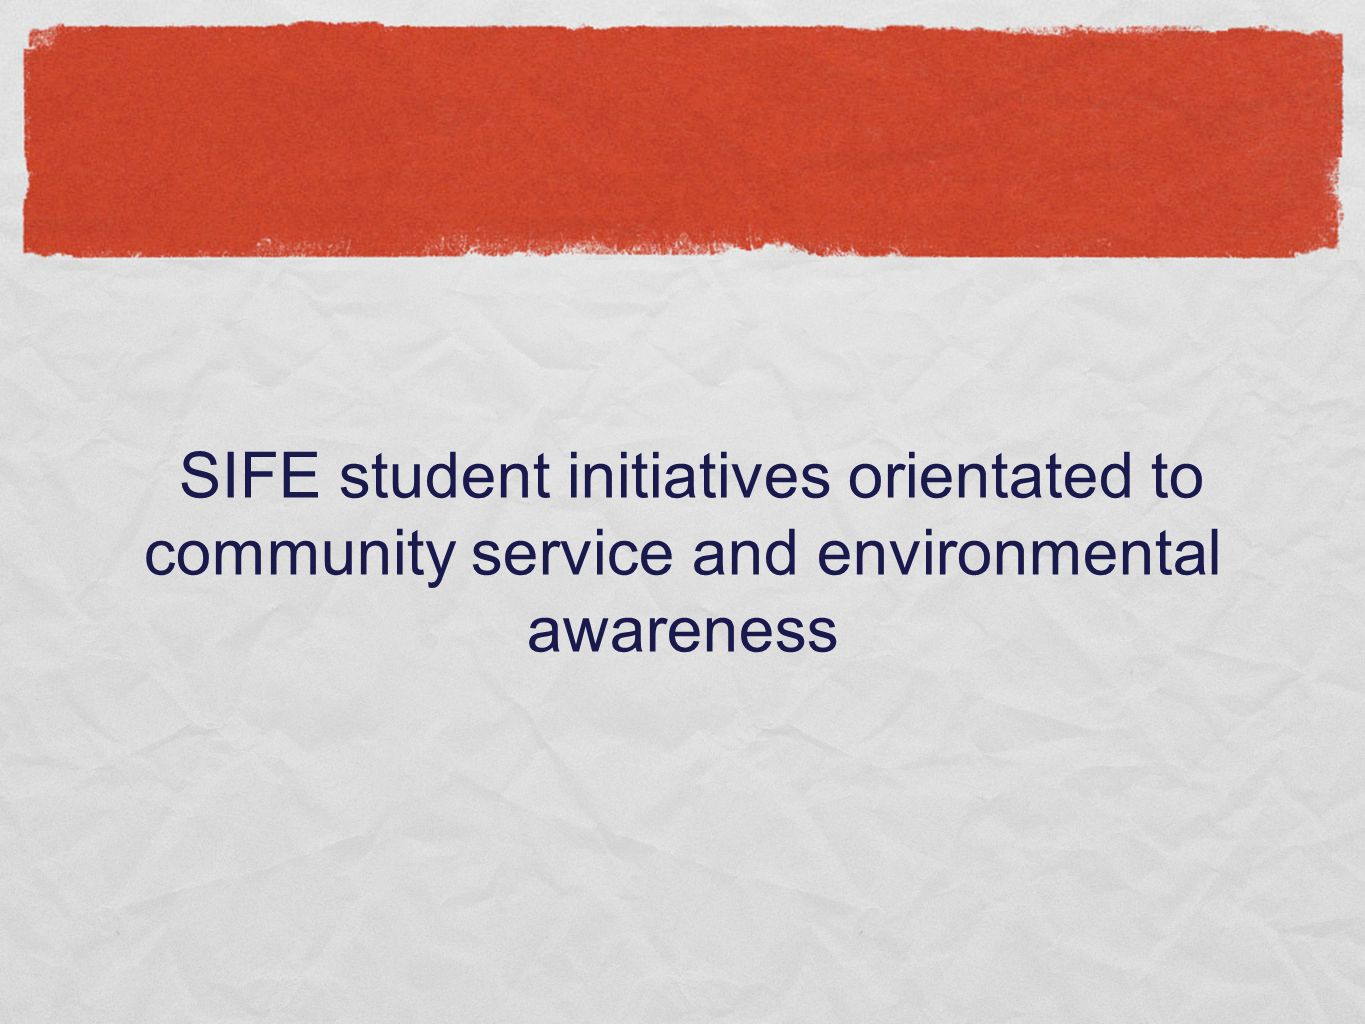 SIFE student initiatives orientated to community service and environmental awareness